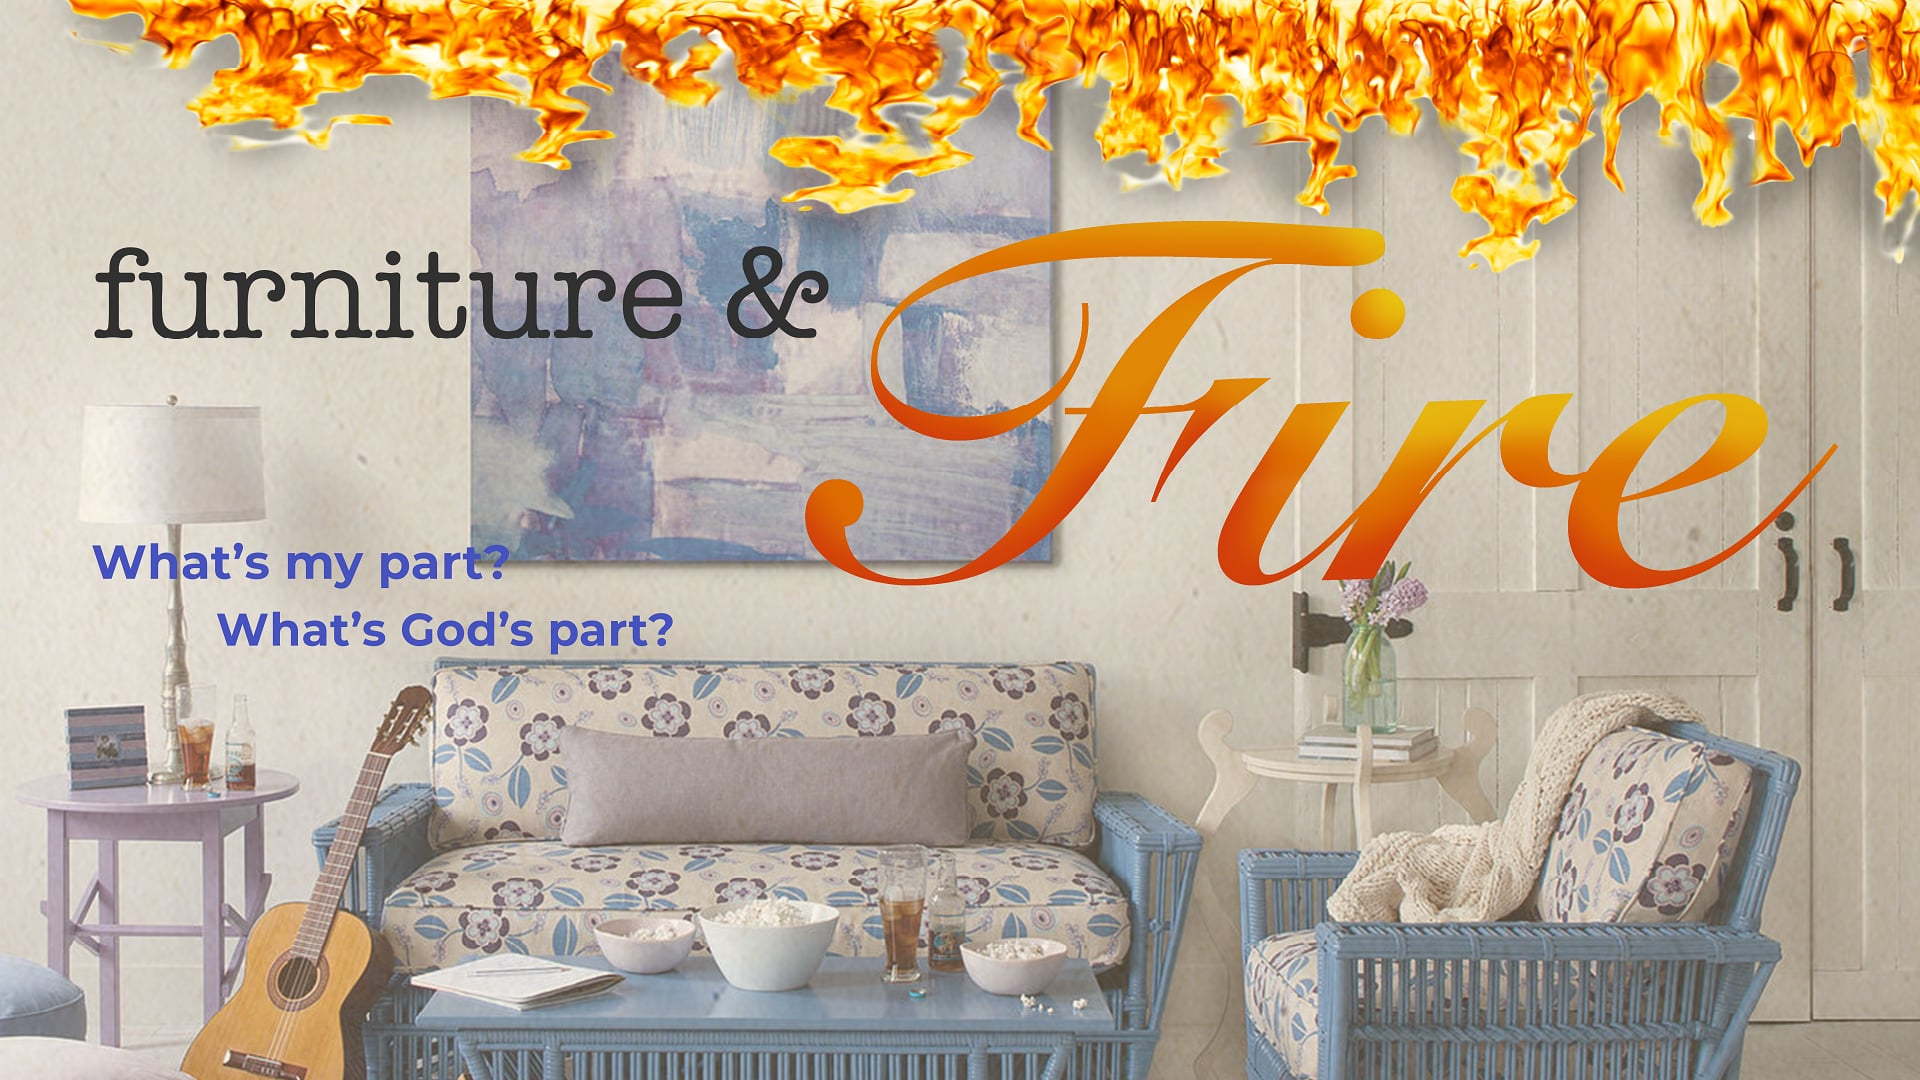 Furniture and Fire - Part 1